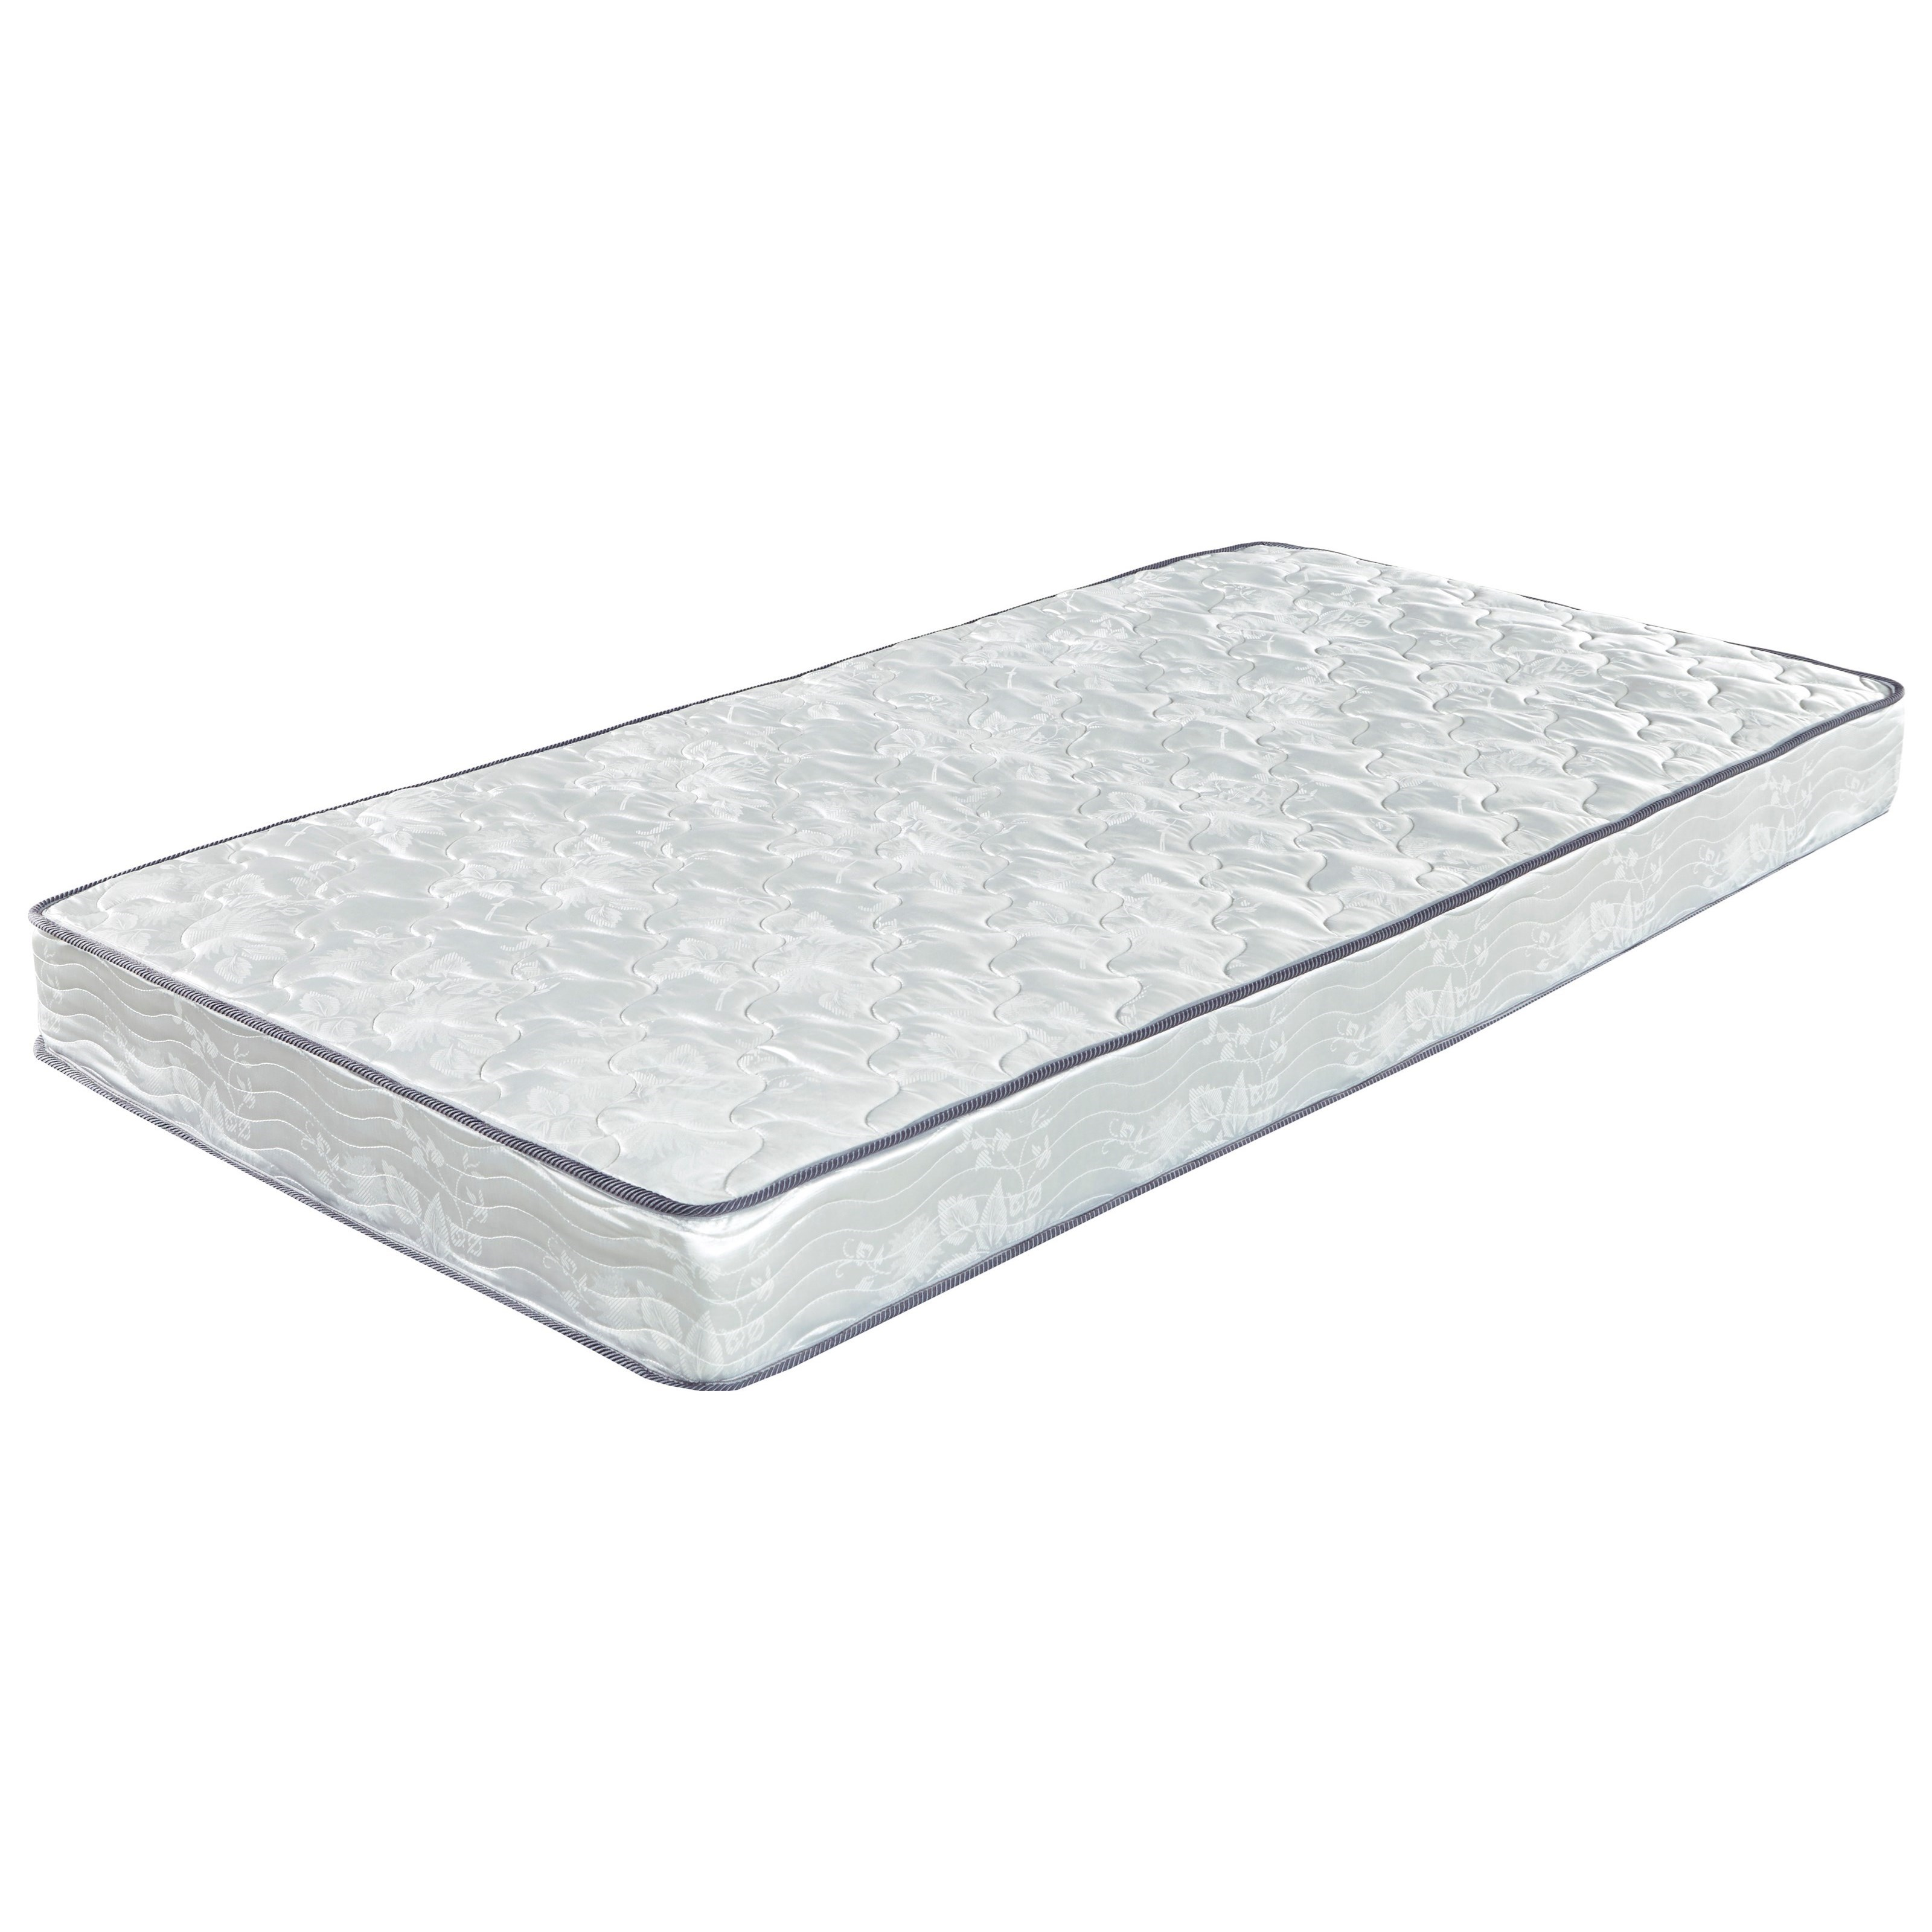 "Ashley Firm Full 6"" Firm Innerspring Mattress by Ashley Sleep at Houston's Yuma Furniture"